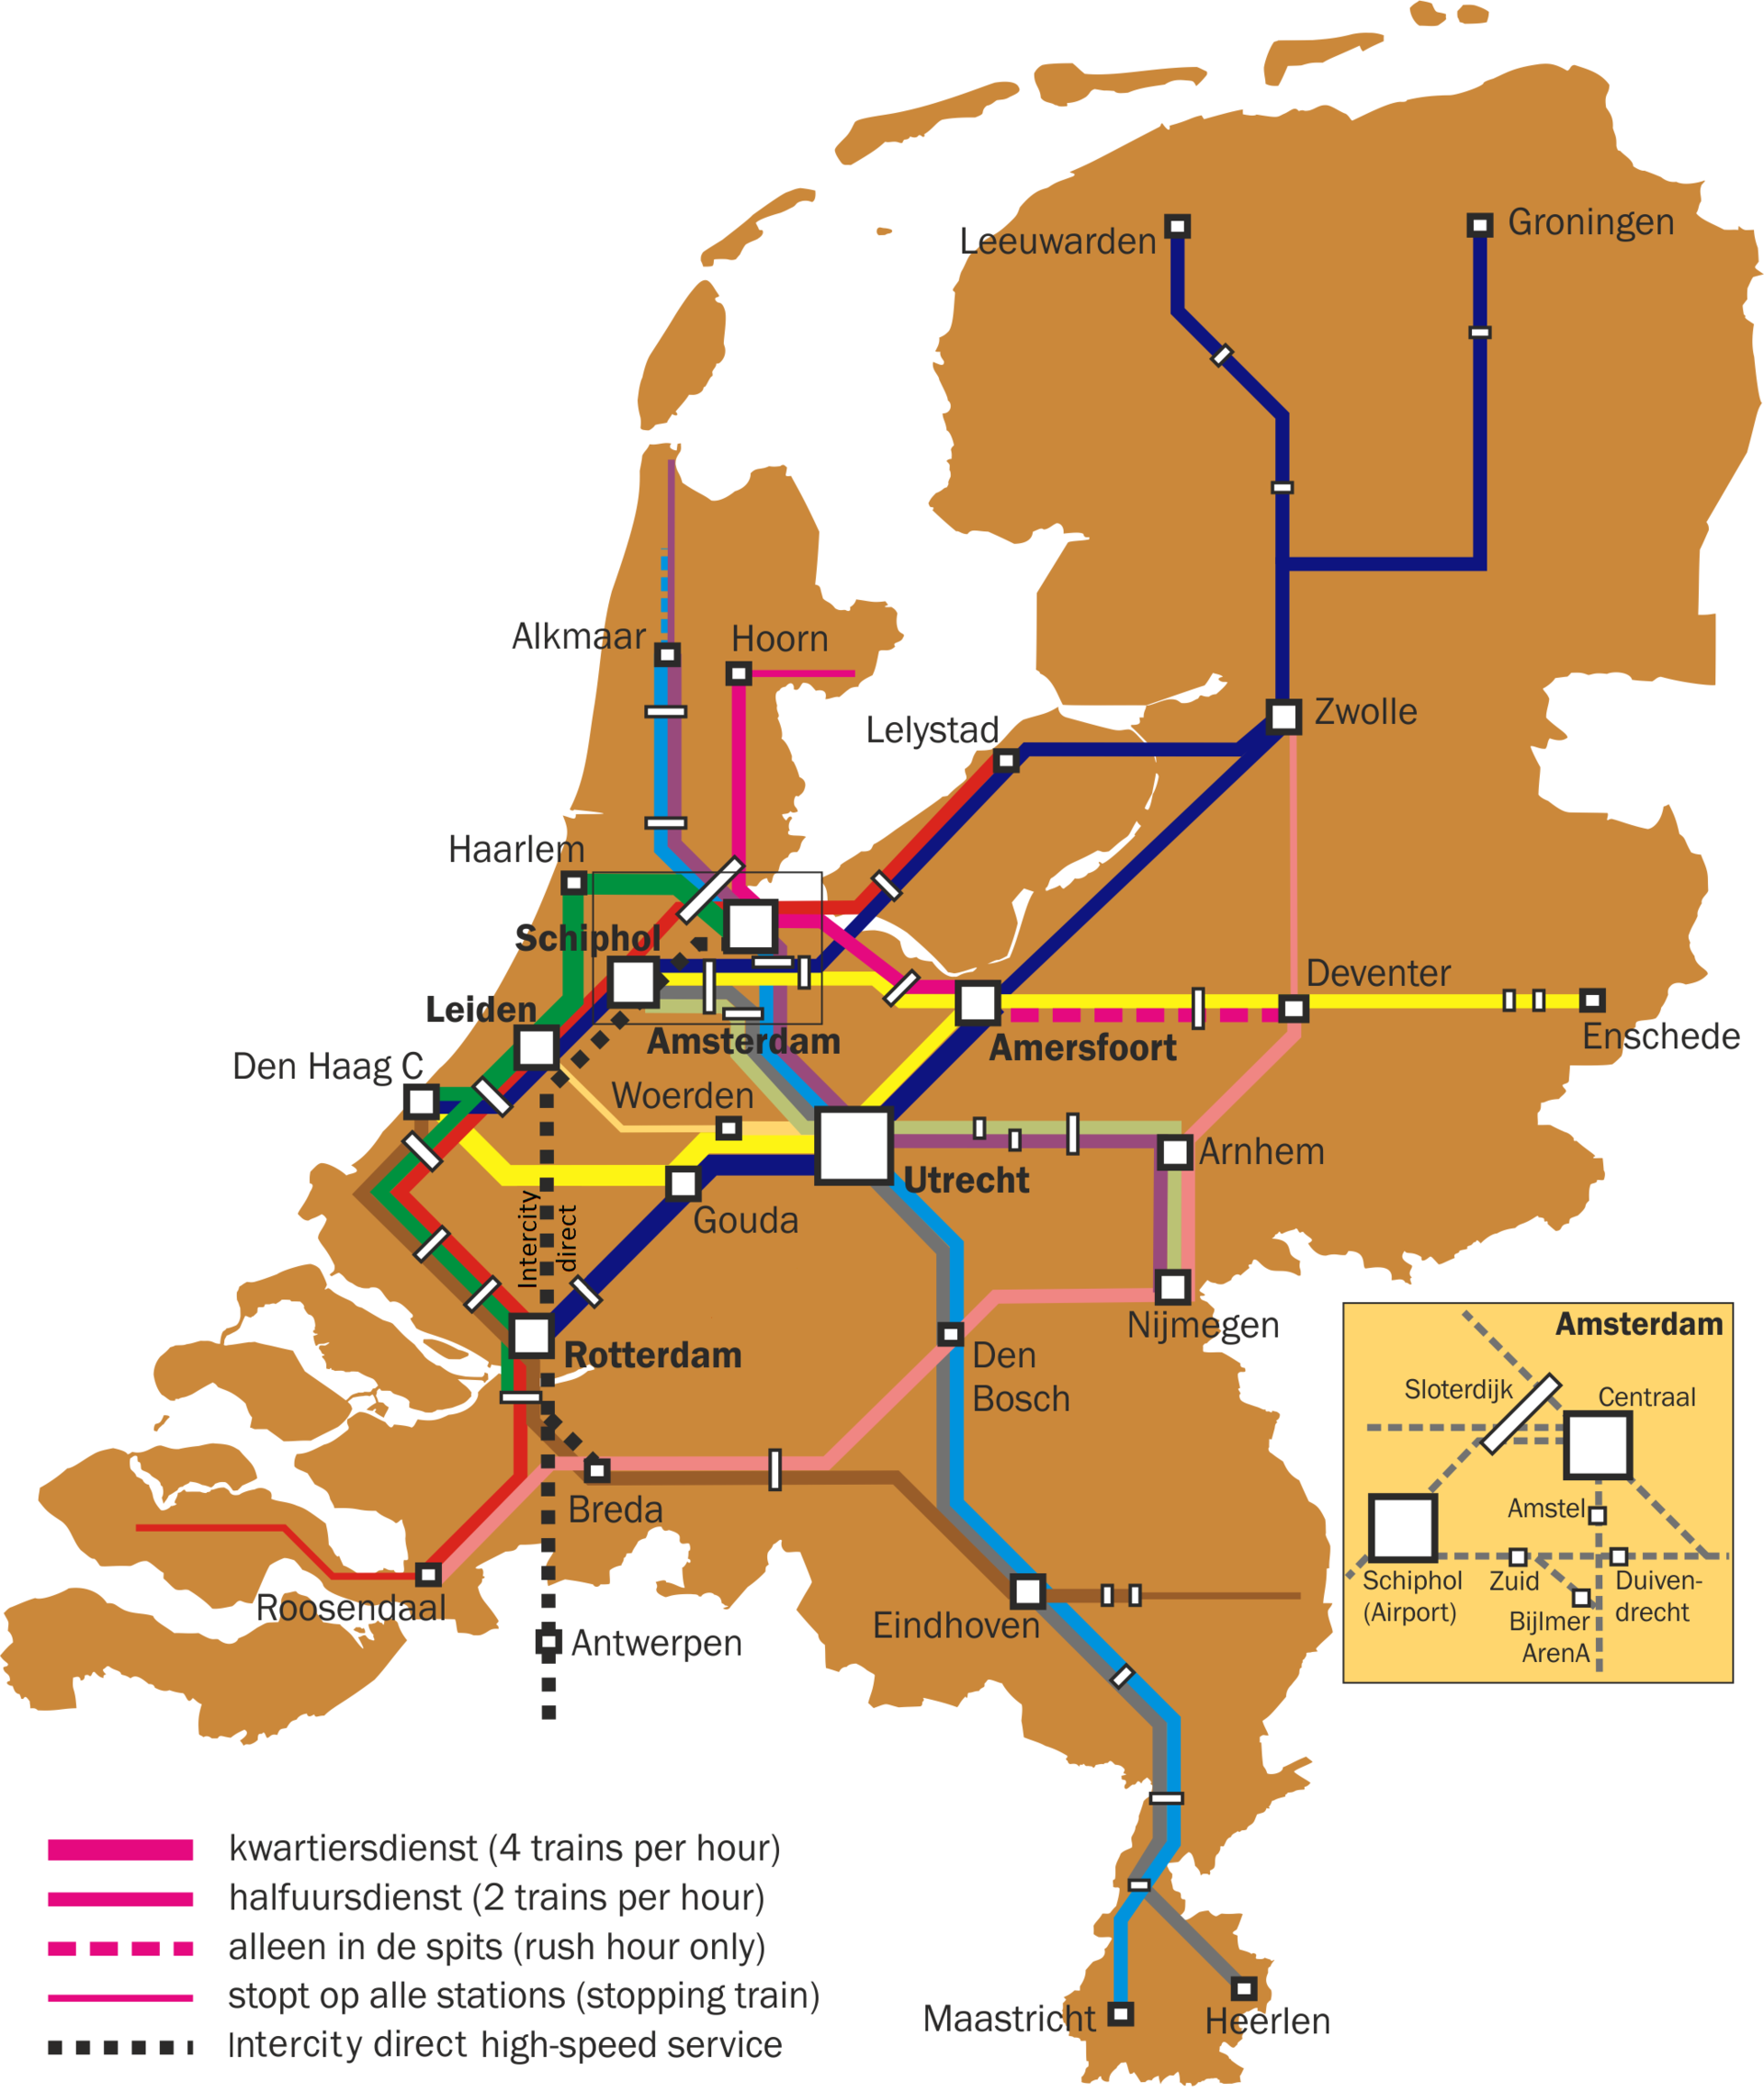 Train routes the Netherlands